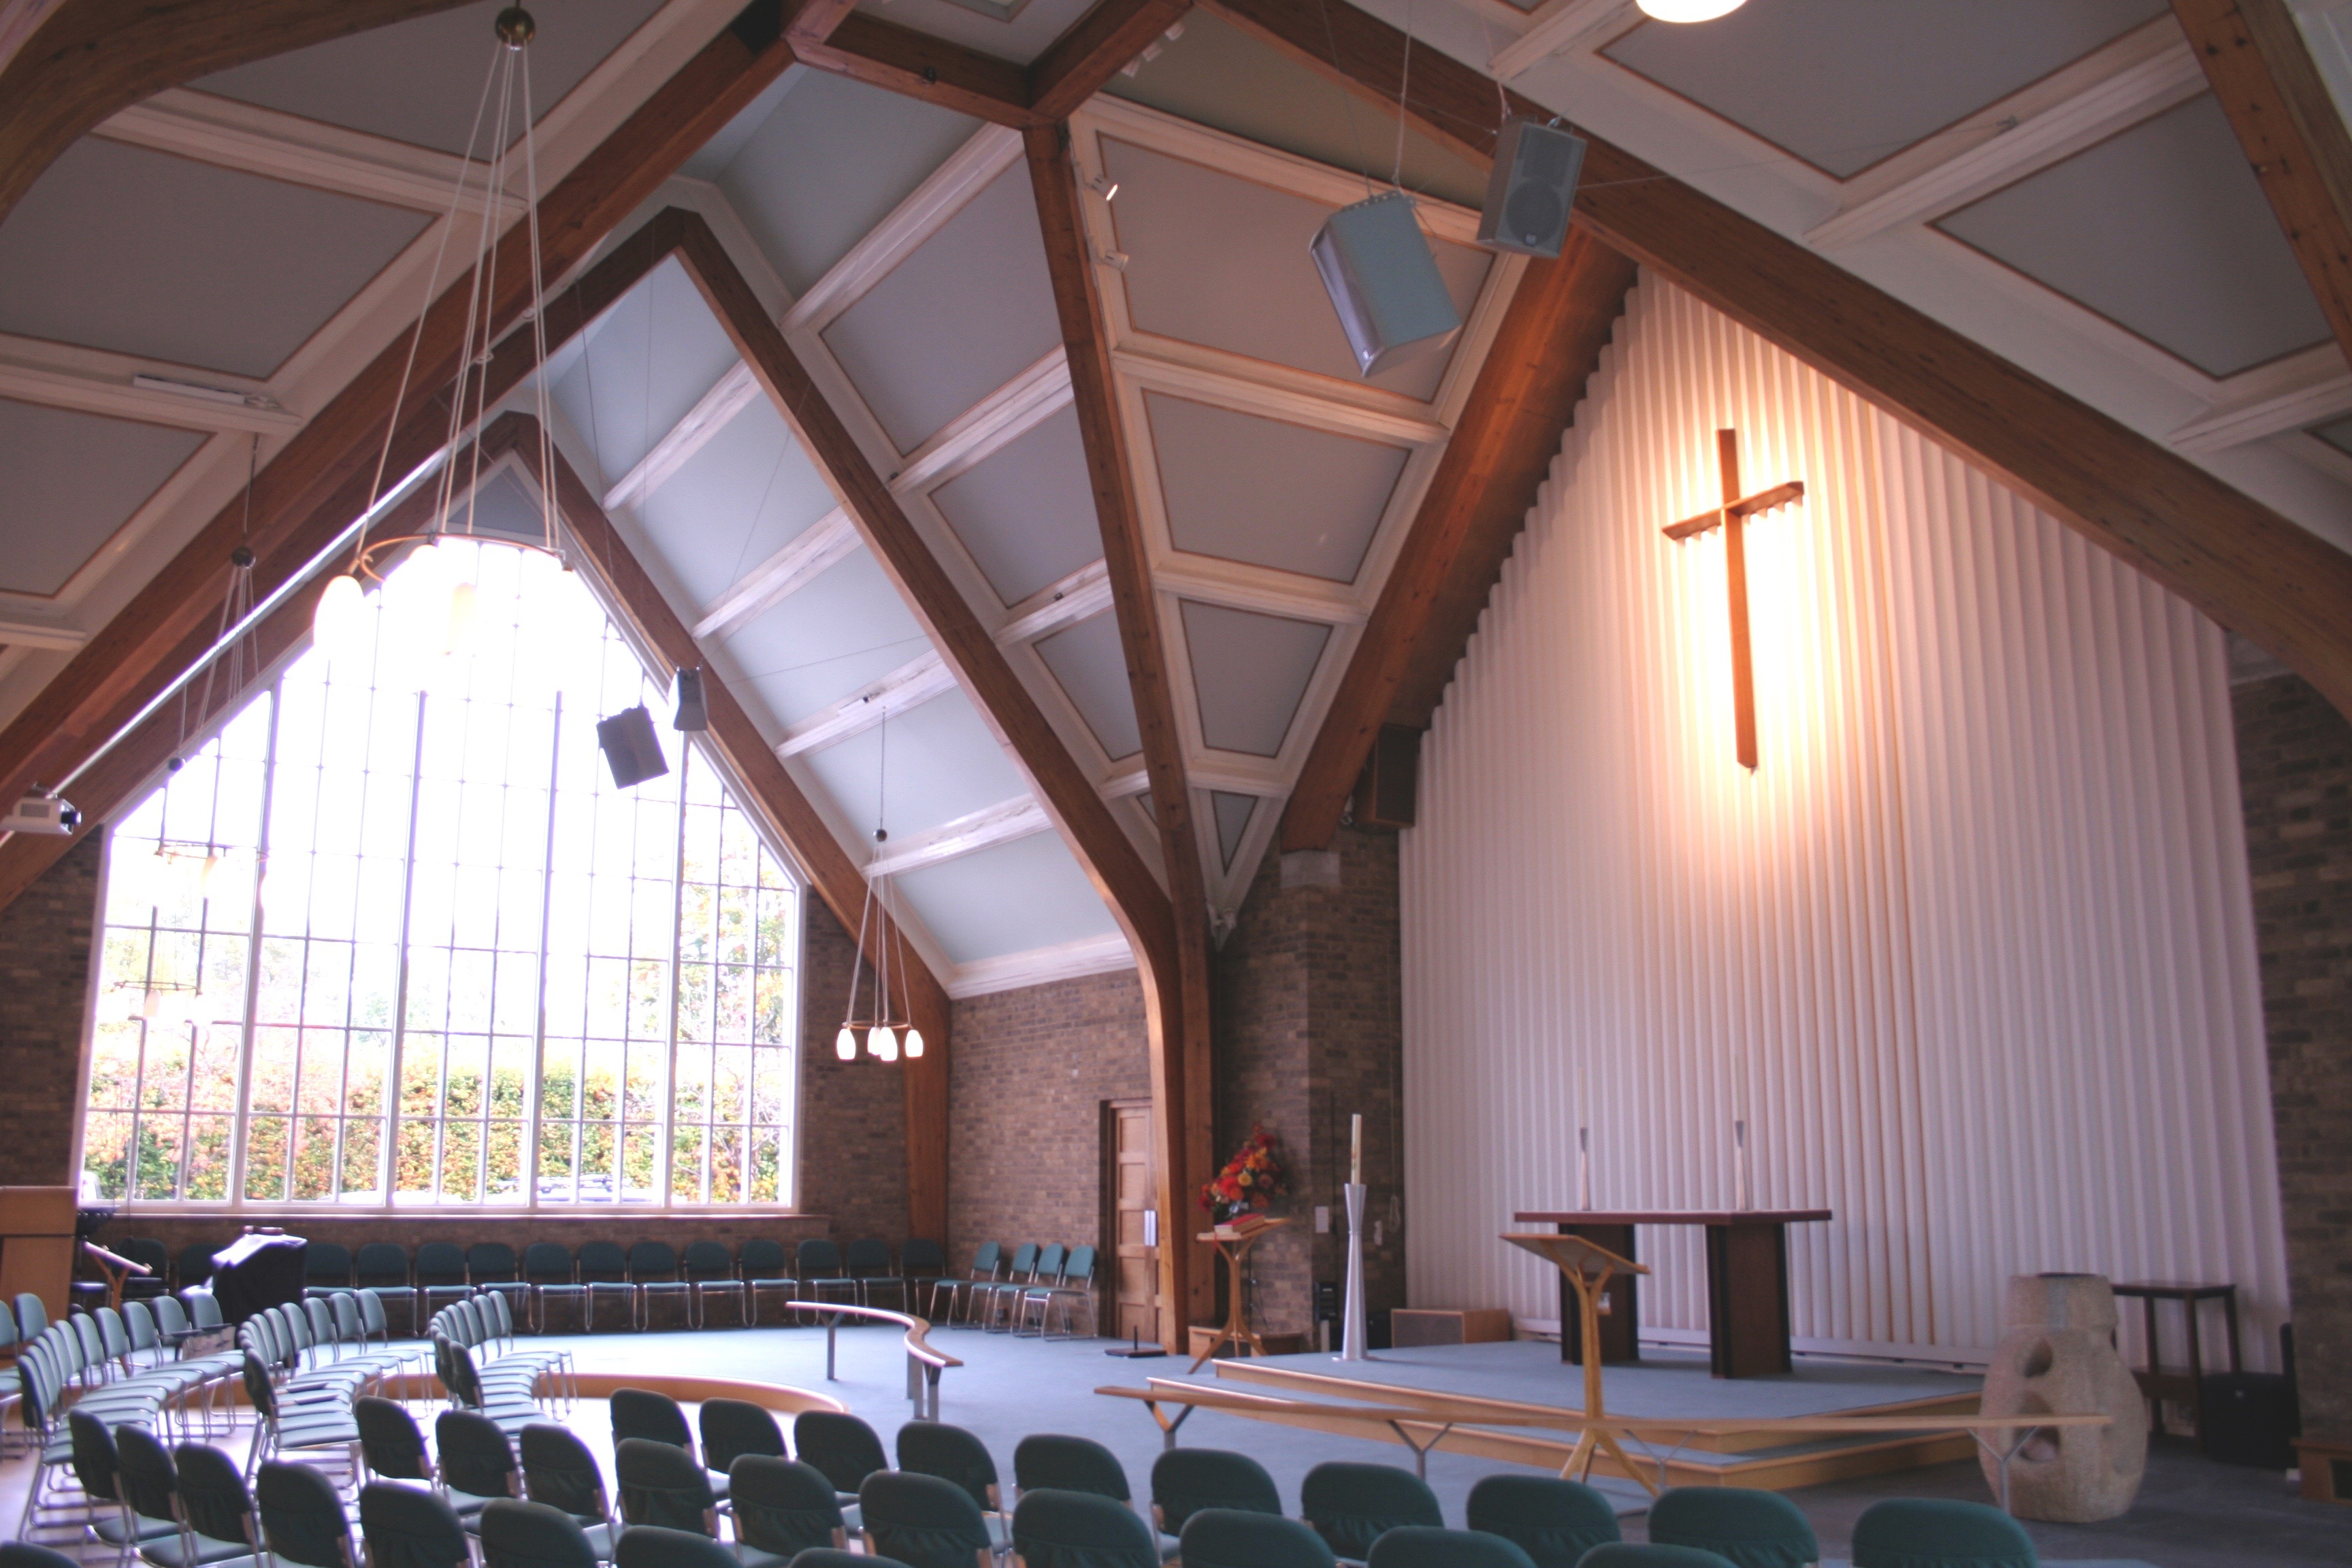 Audio Visual System For Surrey Church Newtech Southern Ltd